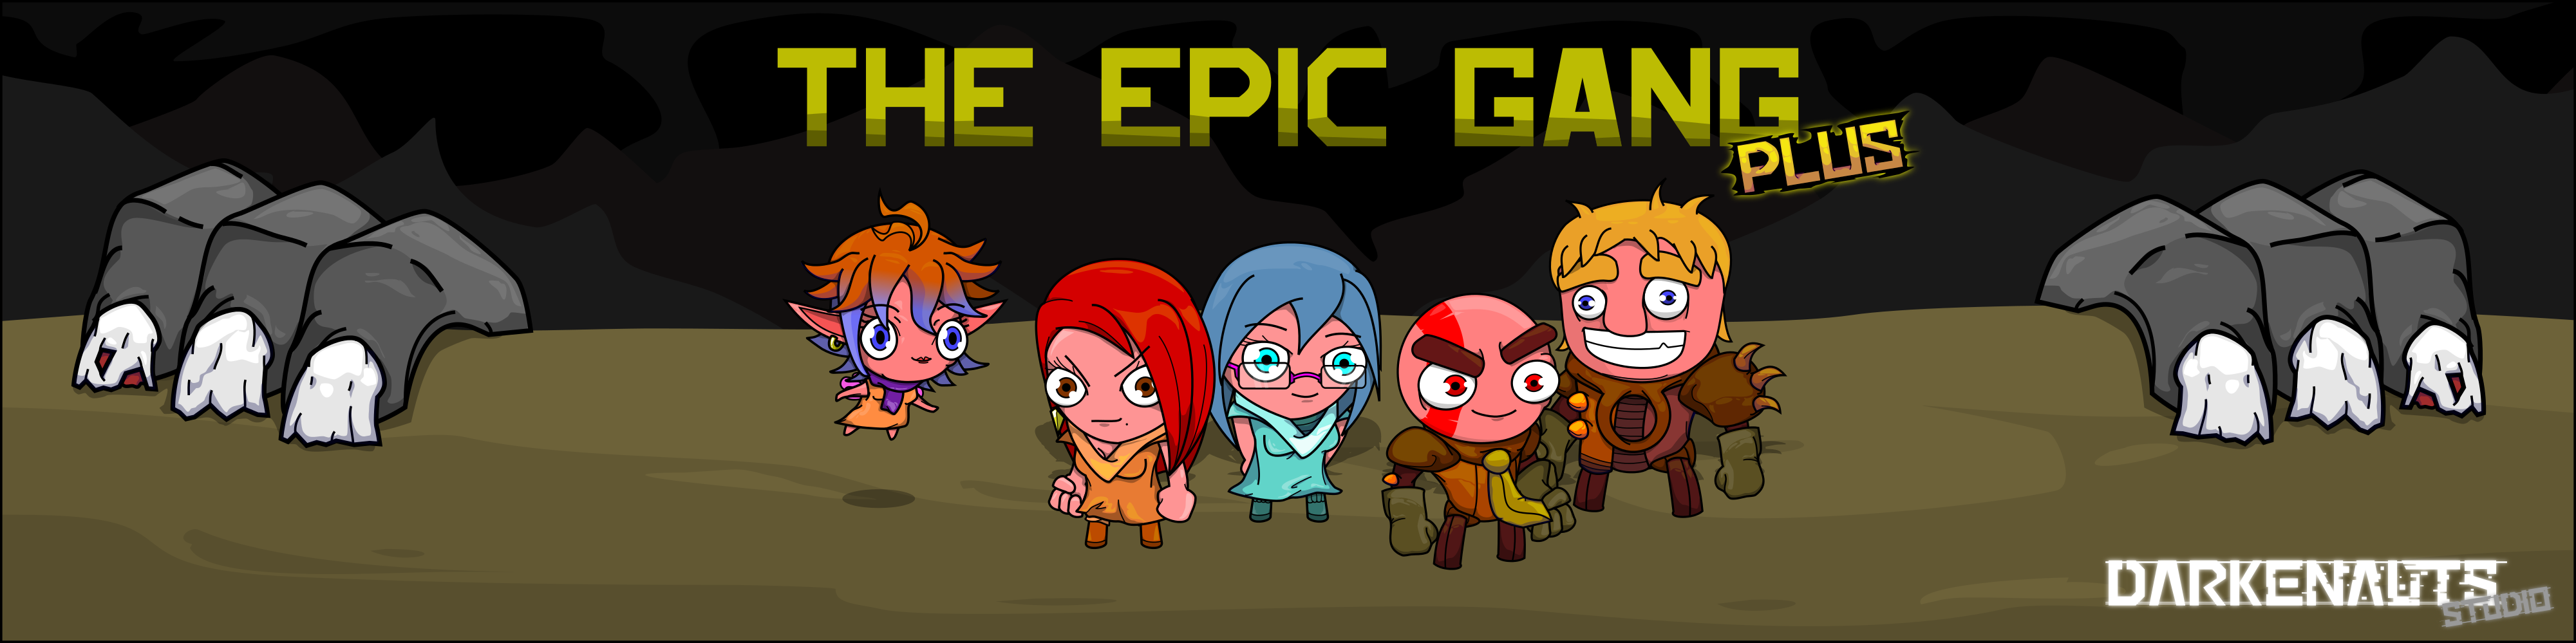 The Epic Gang Plus